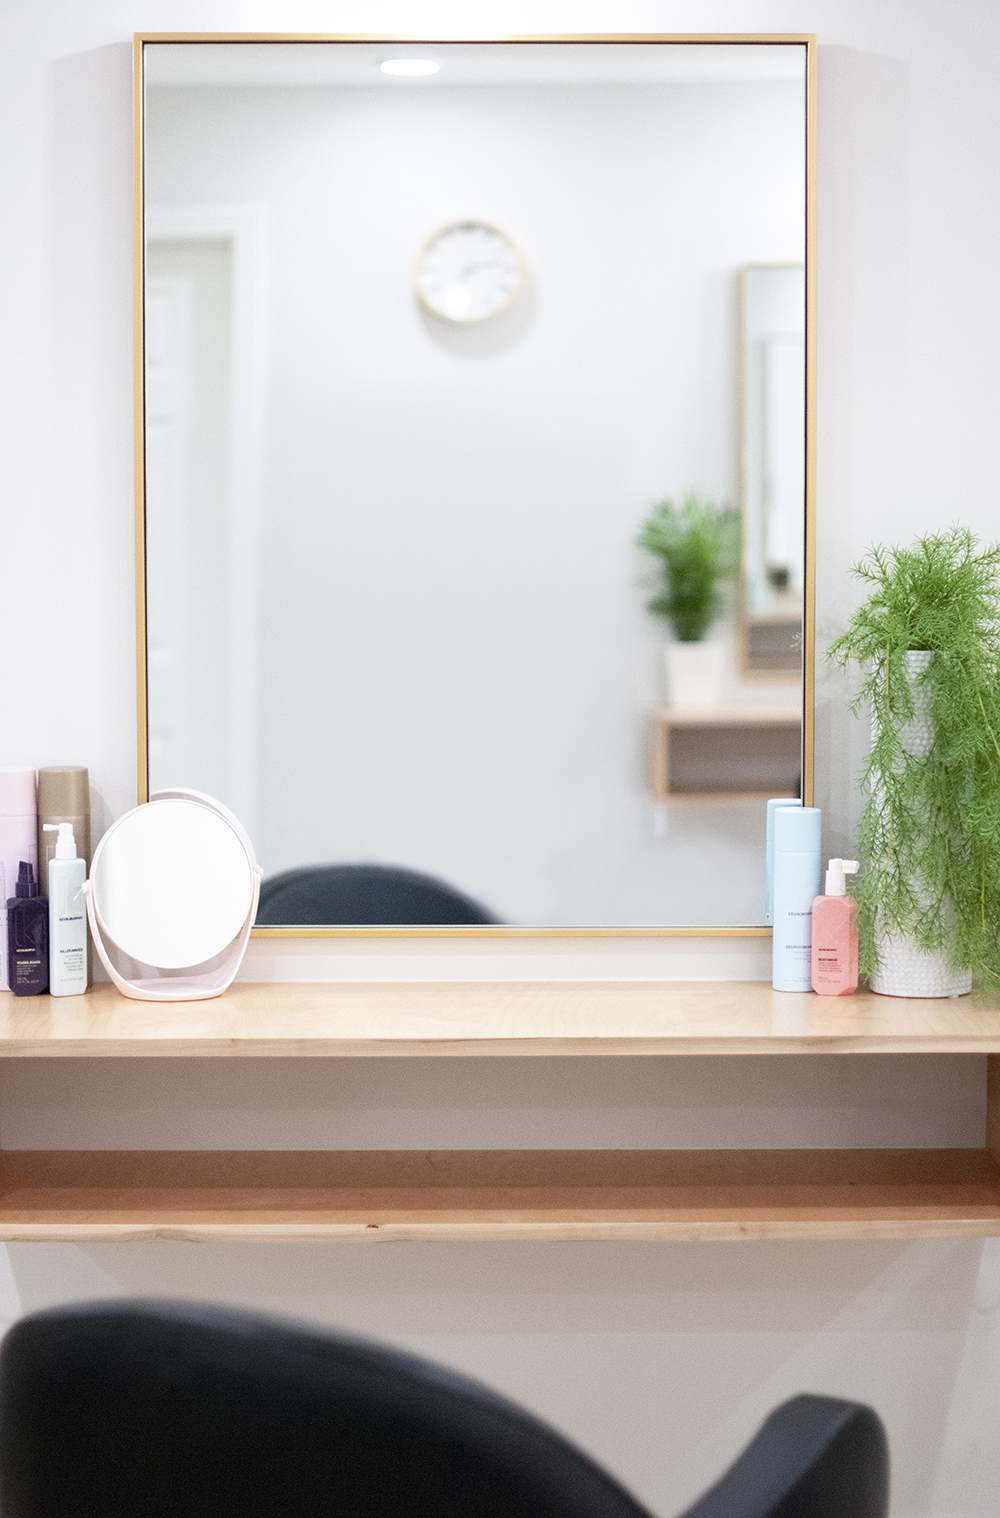 A mirror and salon products on a shelf.